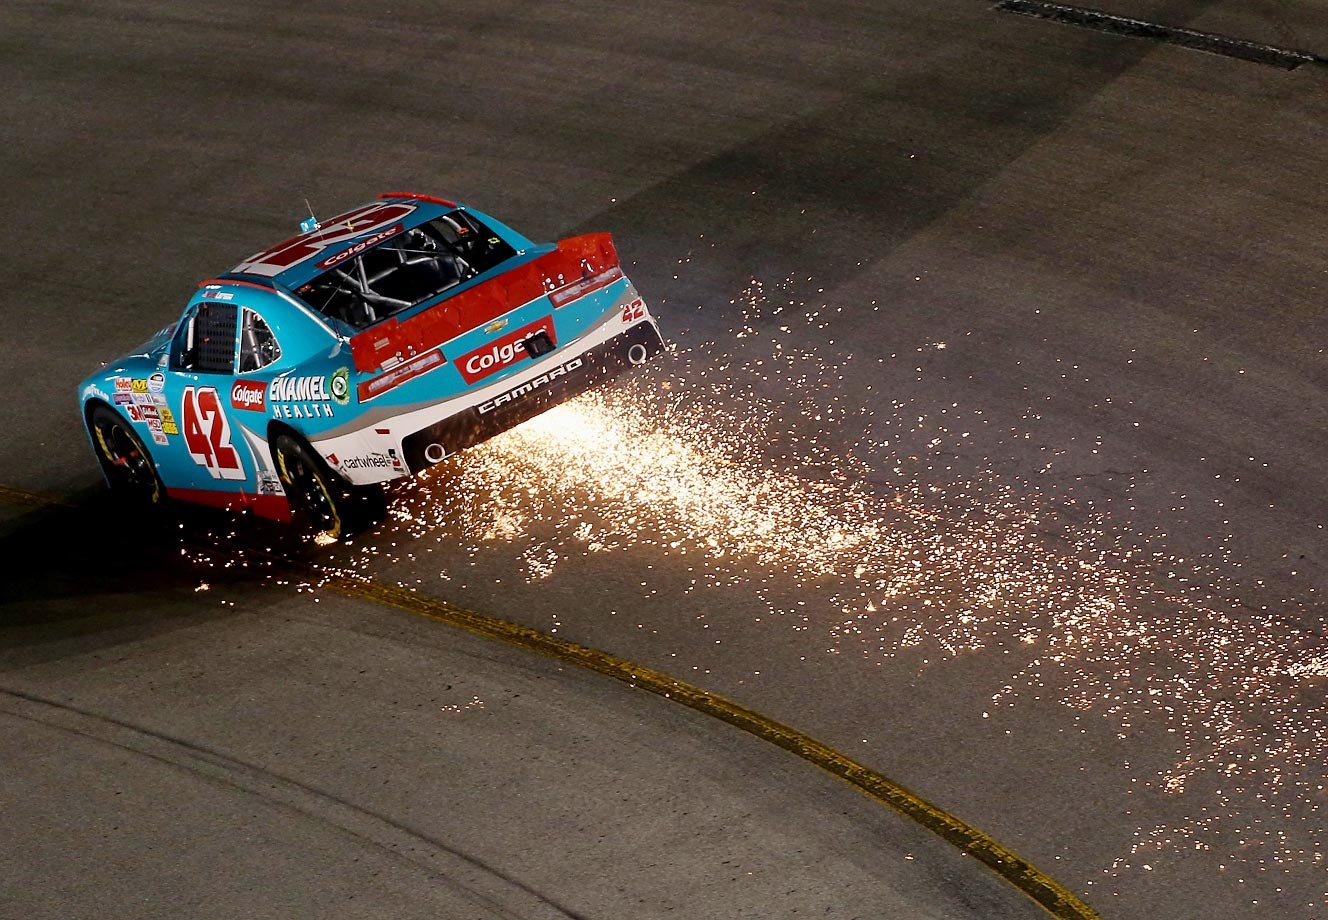 Sparks fly from Kyle Larson's car during the NASCAR Nationwide Series Virginia529 College Savings 250 at Richmond.